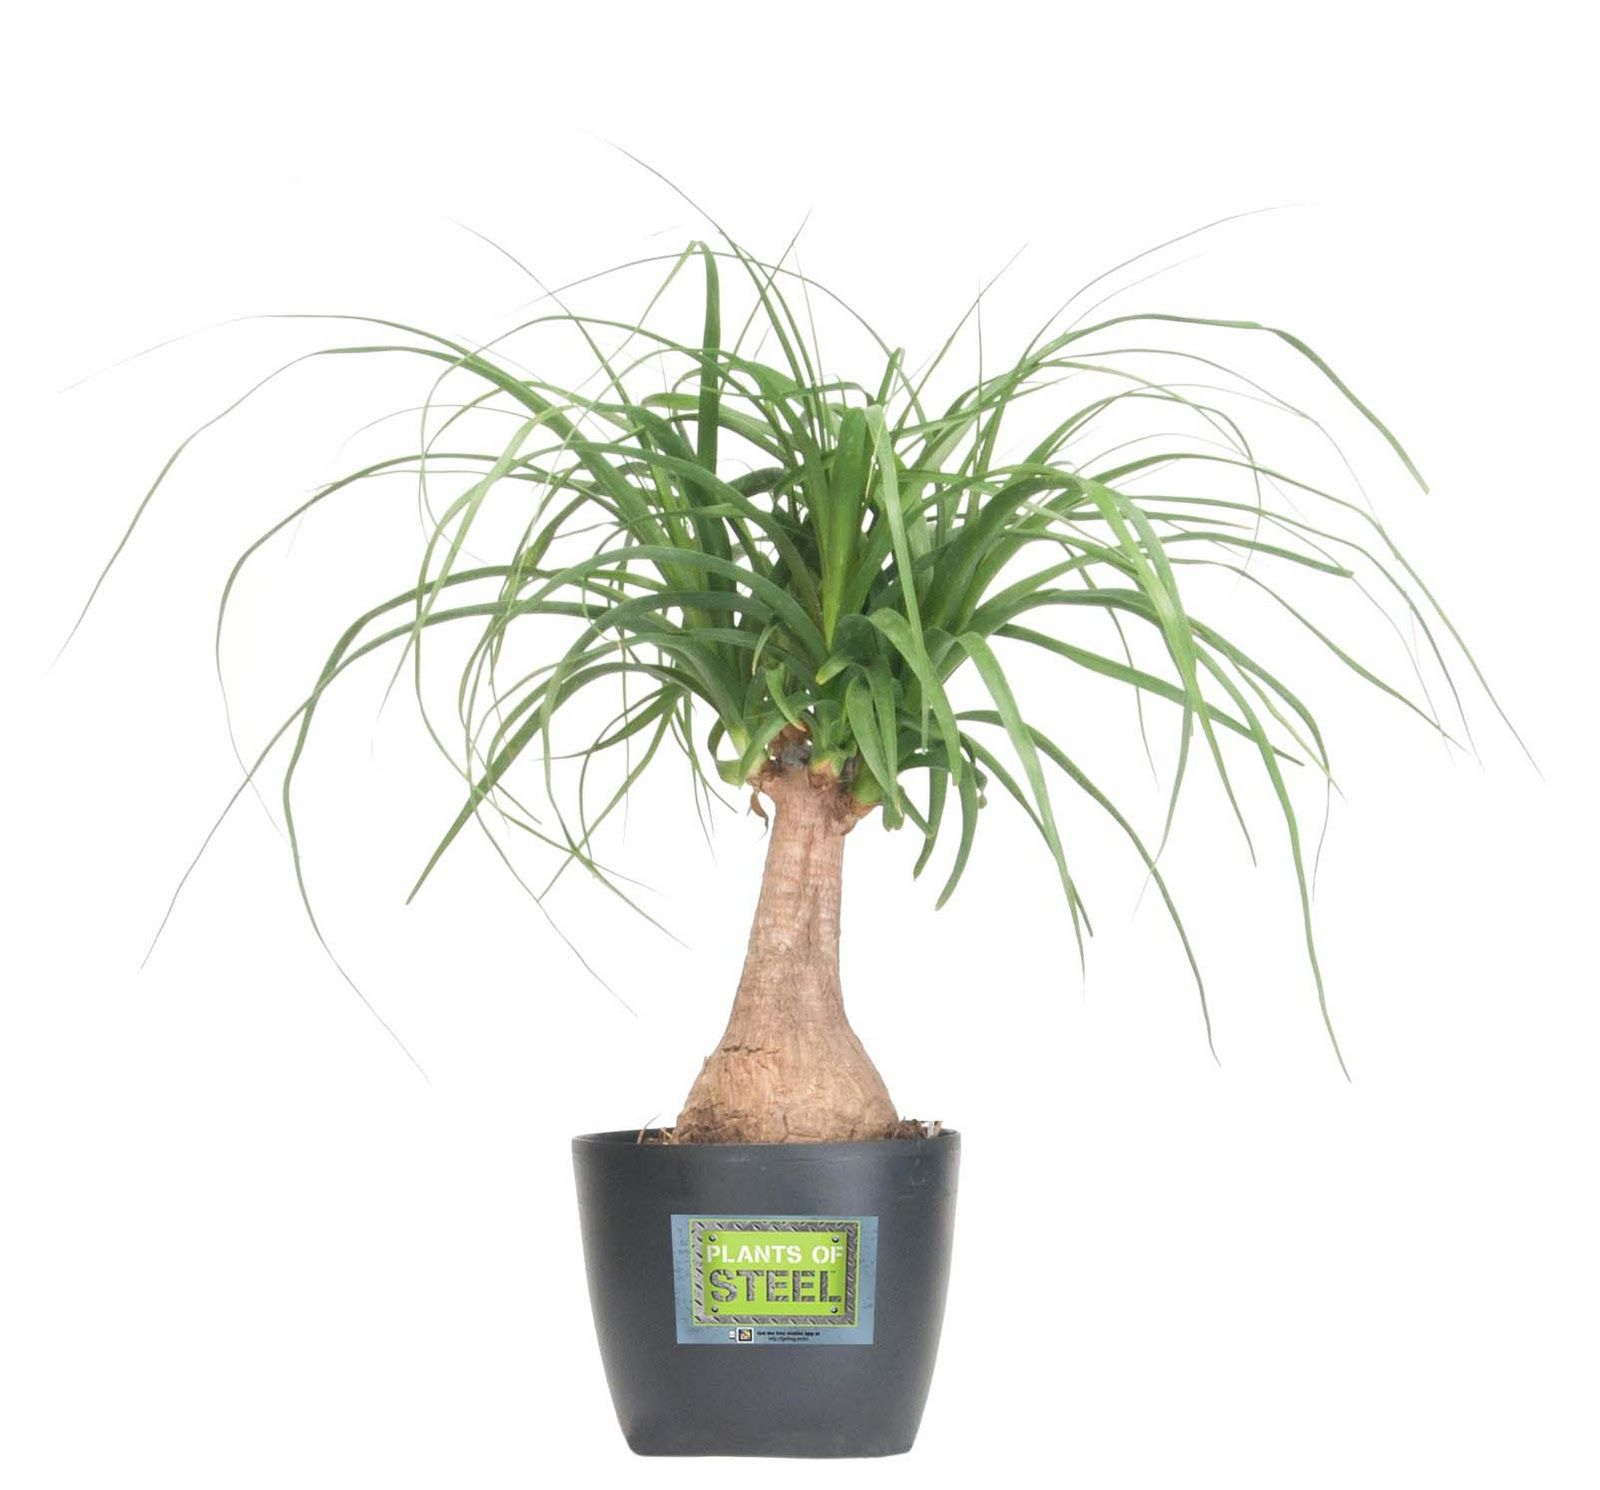 Ponytail Palm from Plants of Steel. I bought one a few weeks ago and I'm keeping my fingers crossed that I don't kill it.